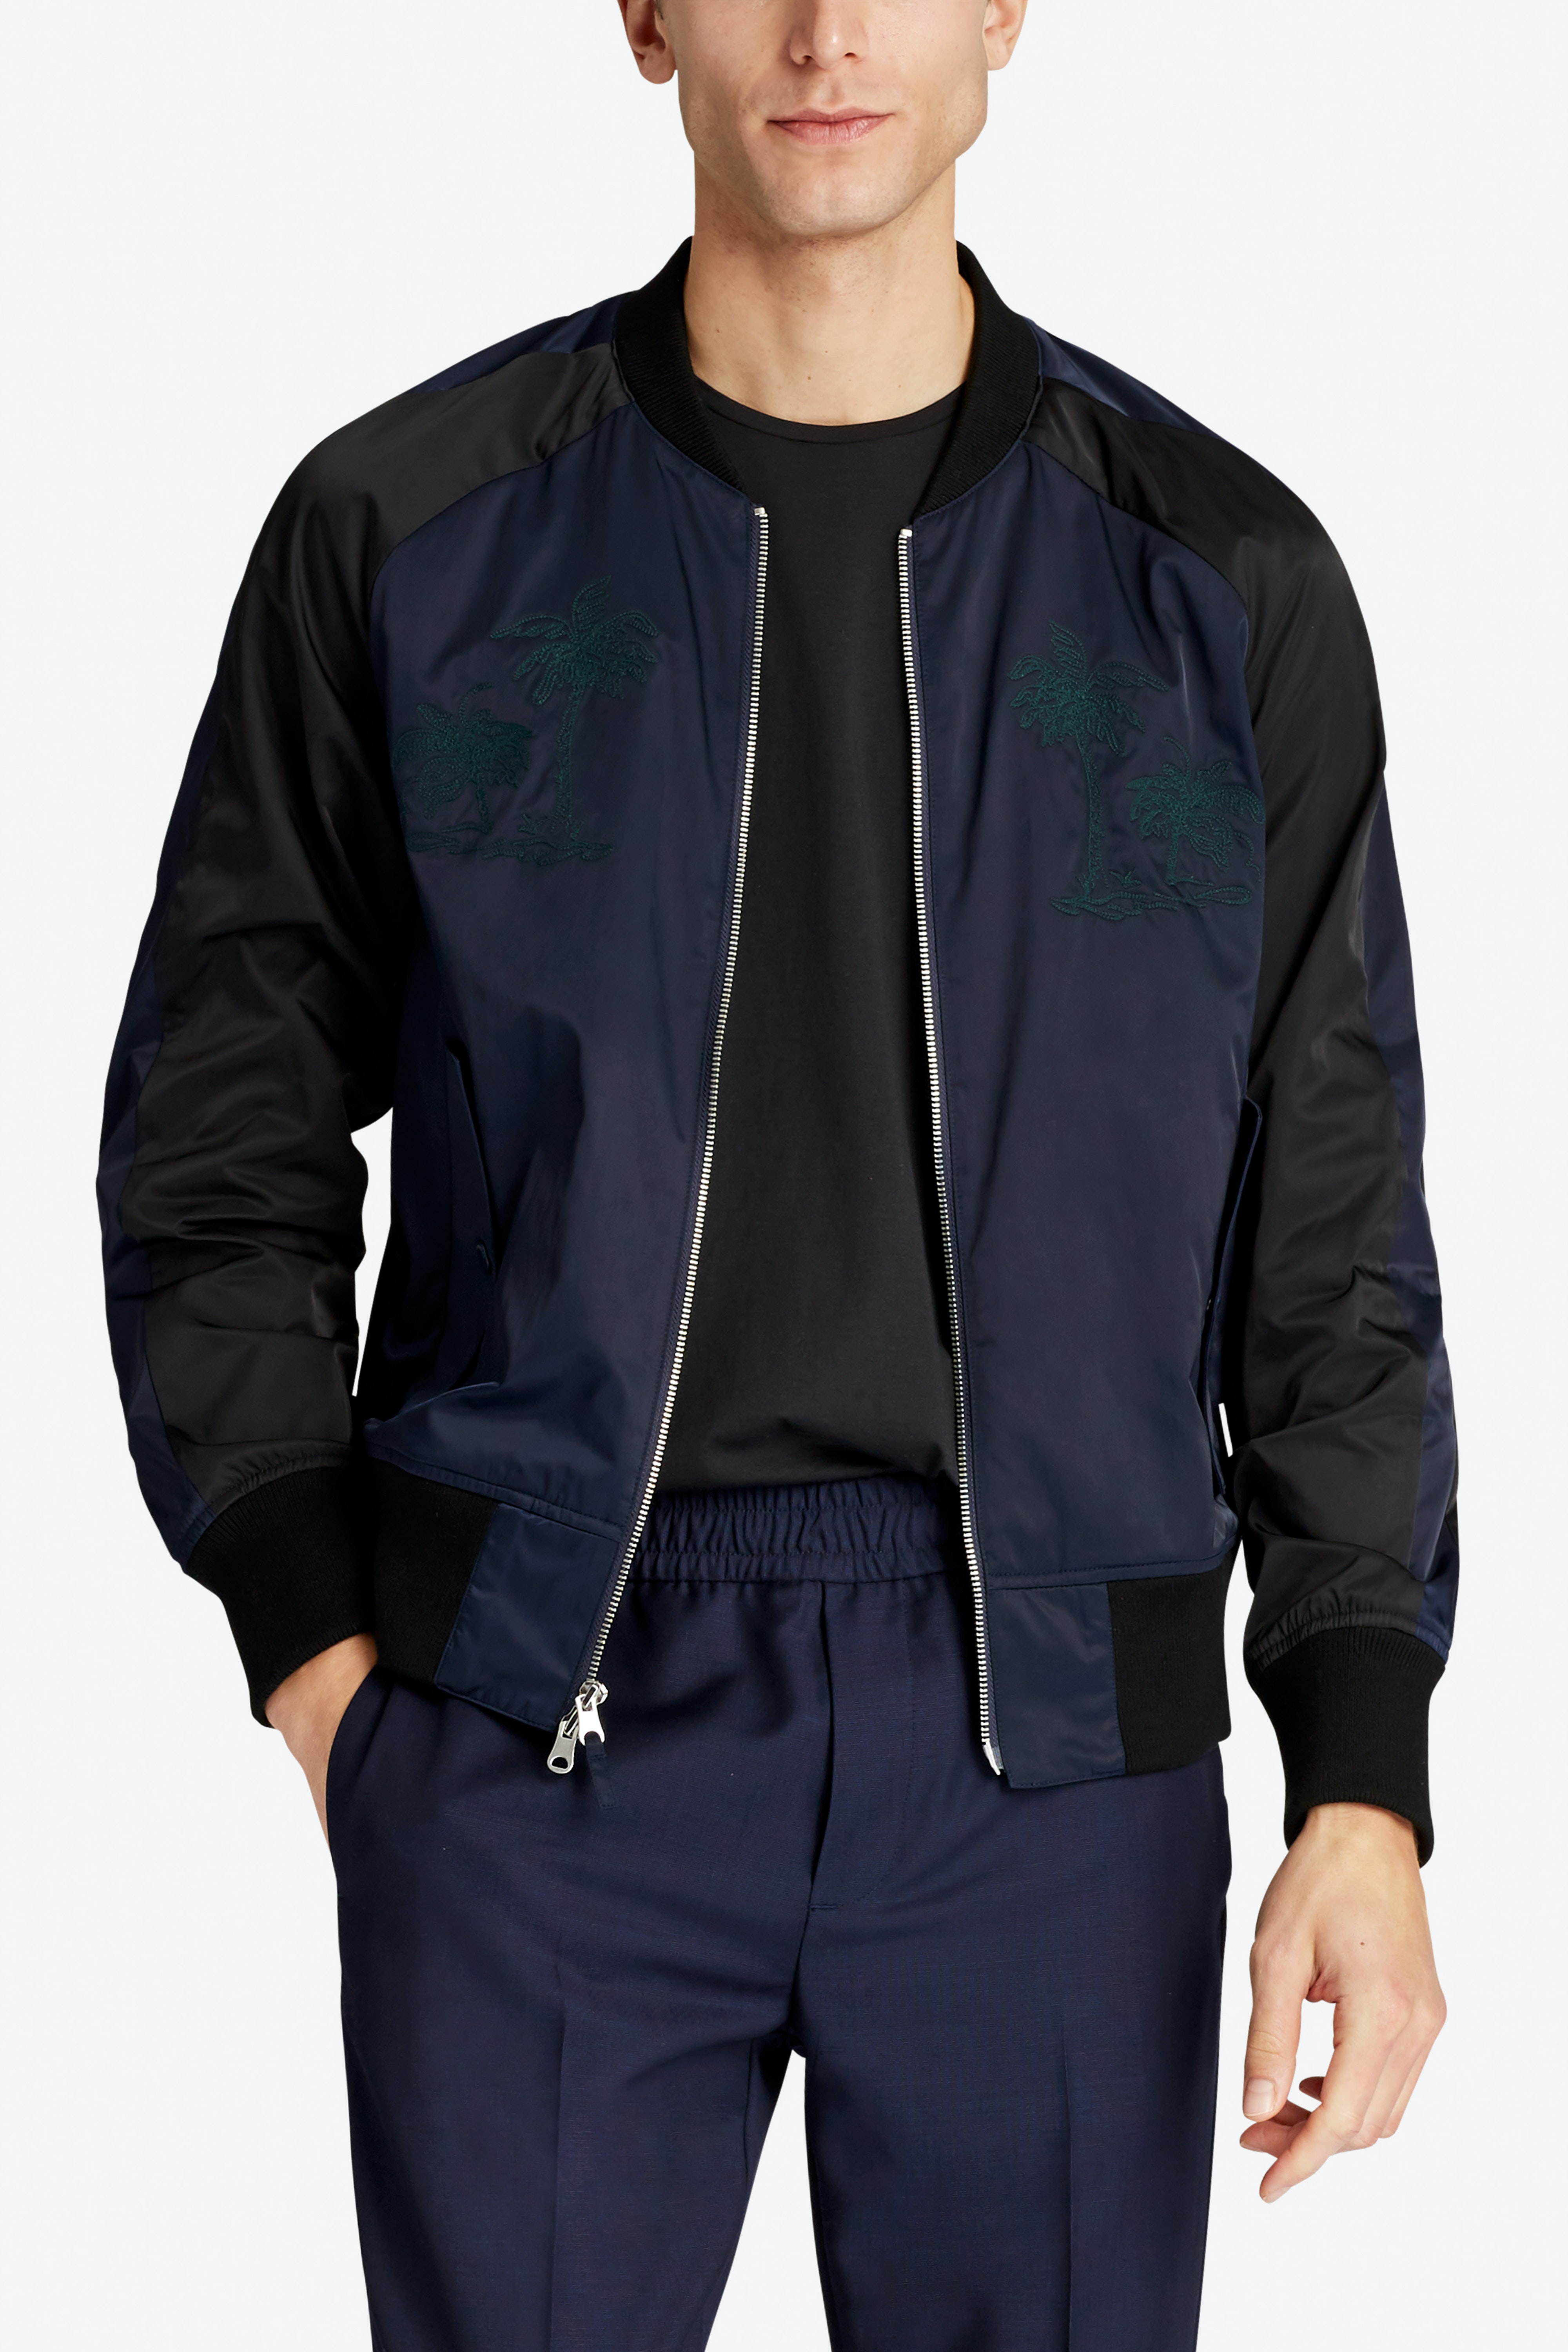 The Boulevard Bomber Jacket